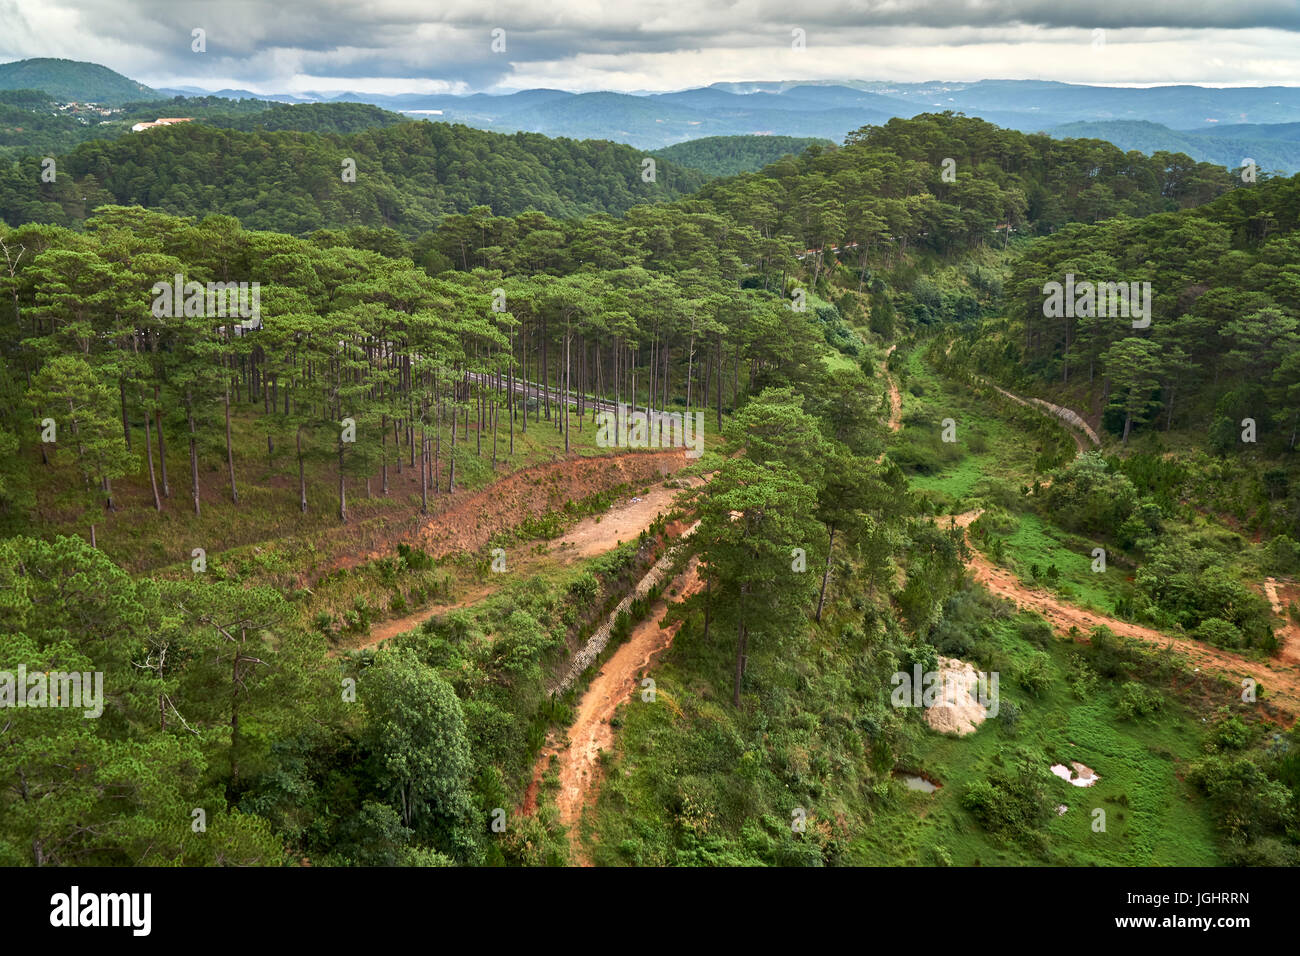 Pine forest - high angle view - from the Dalat Cable Car to the Truc Lam pagoda. Dalat, Vietnam. - Stock Image